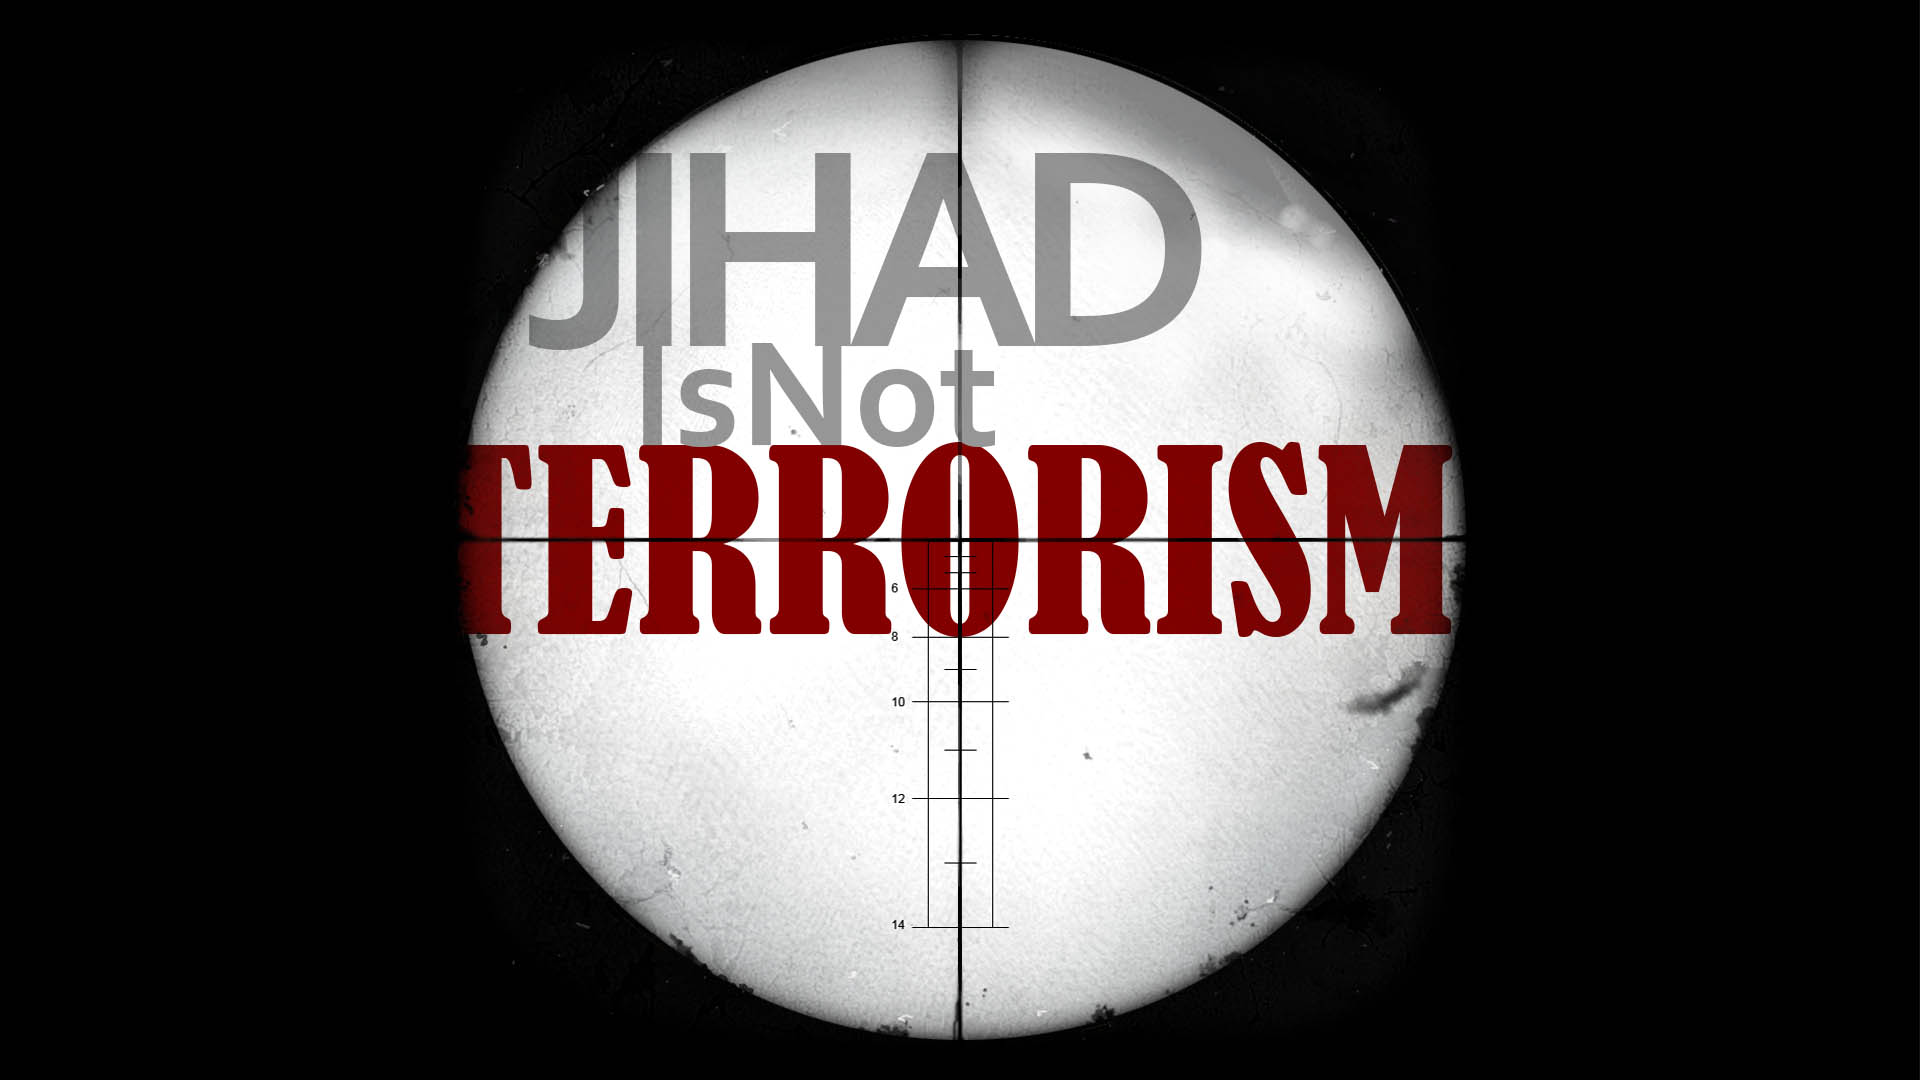 terrorism and spectacular global jihad Al qaeda, the islamic state, and the global jihadist movement by but the organization that changed the face of terrorism forever and unleashed a whirlwind of counterterrorism activity and al qaeda achieved a degree of international notoriety with a series of spectacular attacks in.